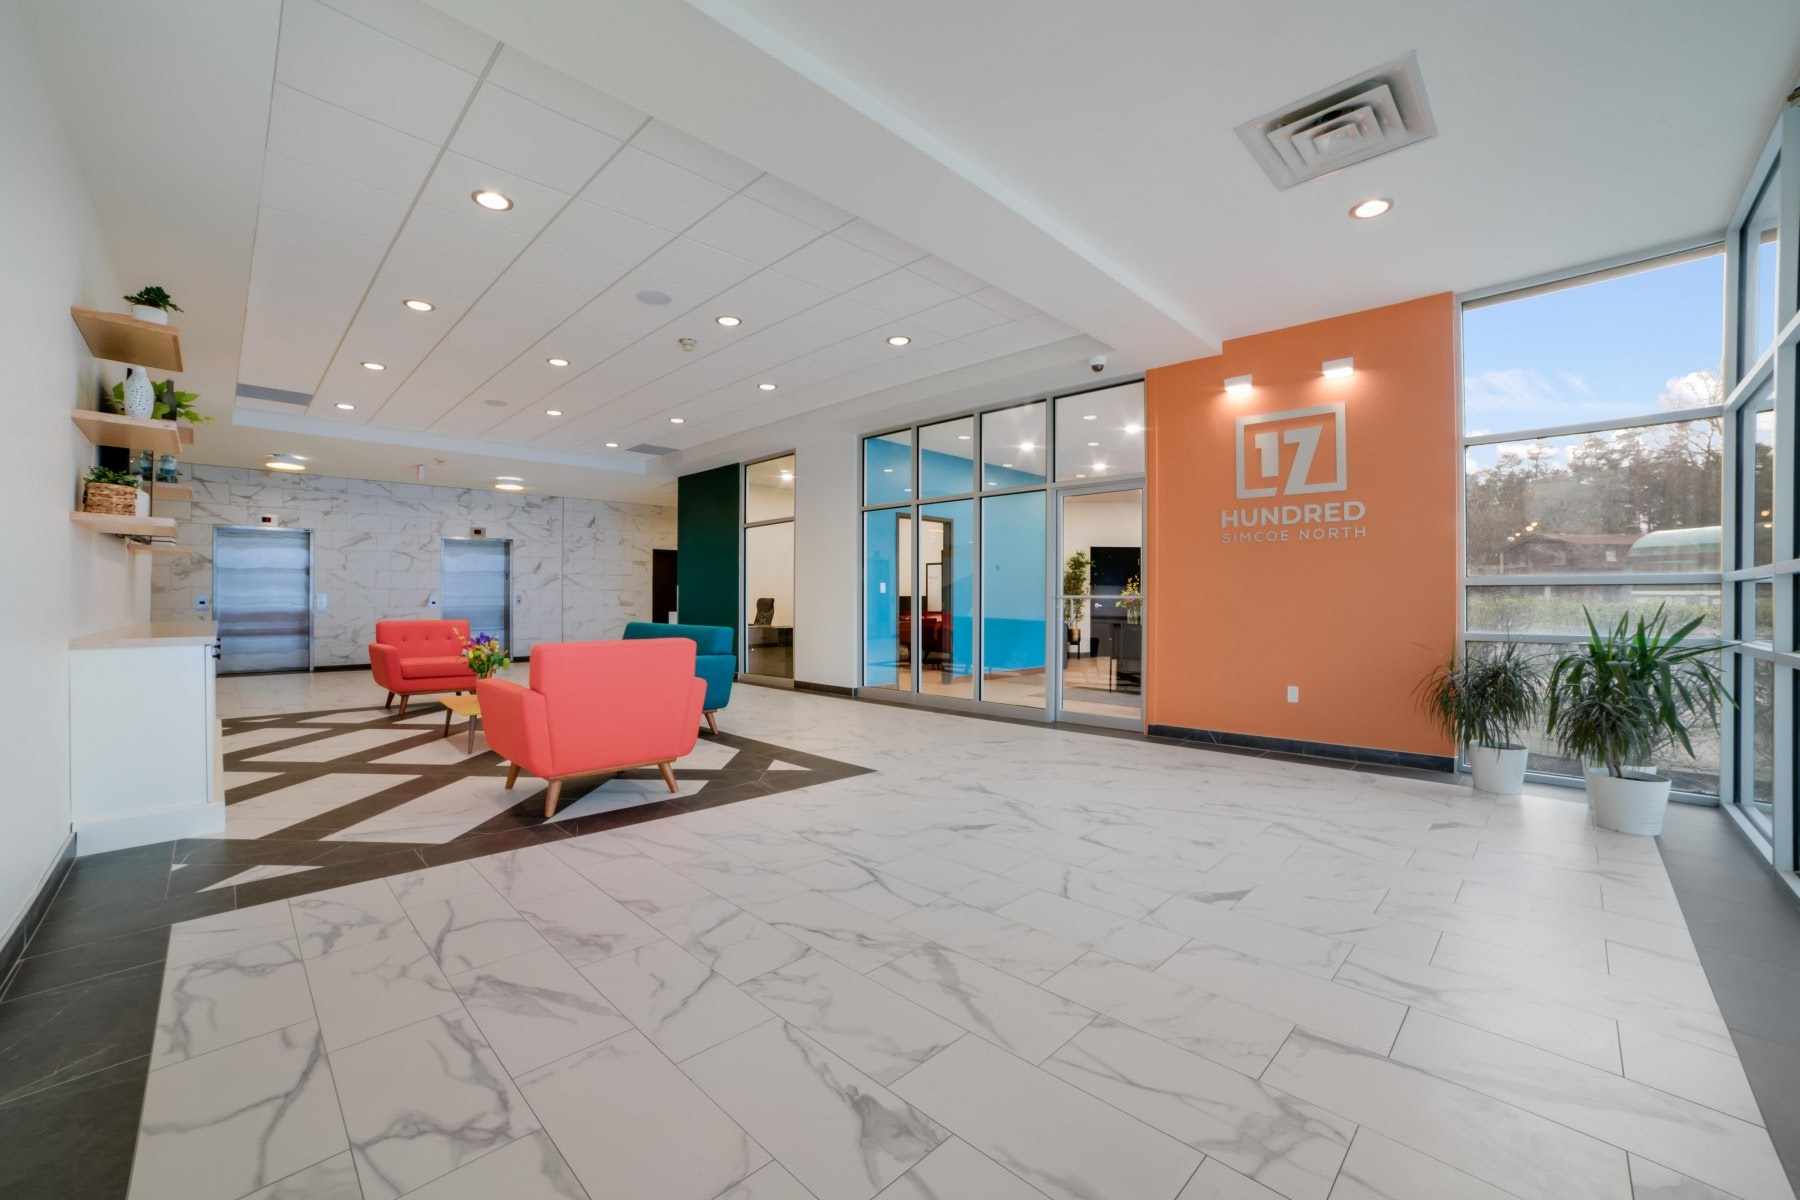 Lobby with couches and décor